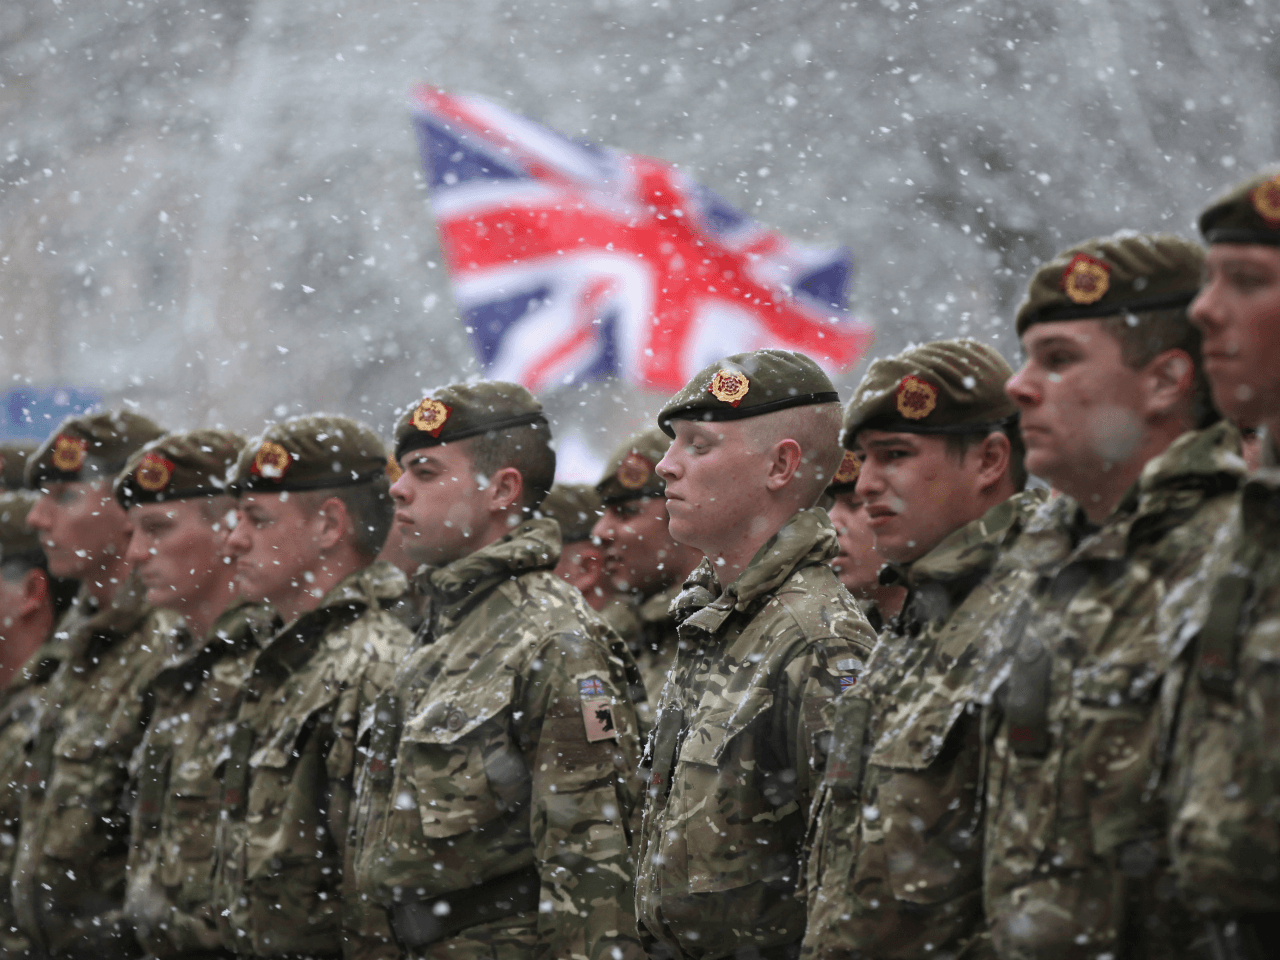 UKIP Leader Blasts Tory Military Cuts, Says UK Could Still be Sucked into EU Army